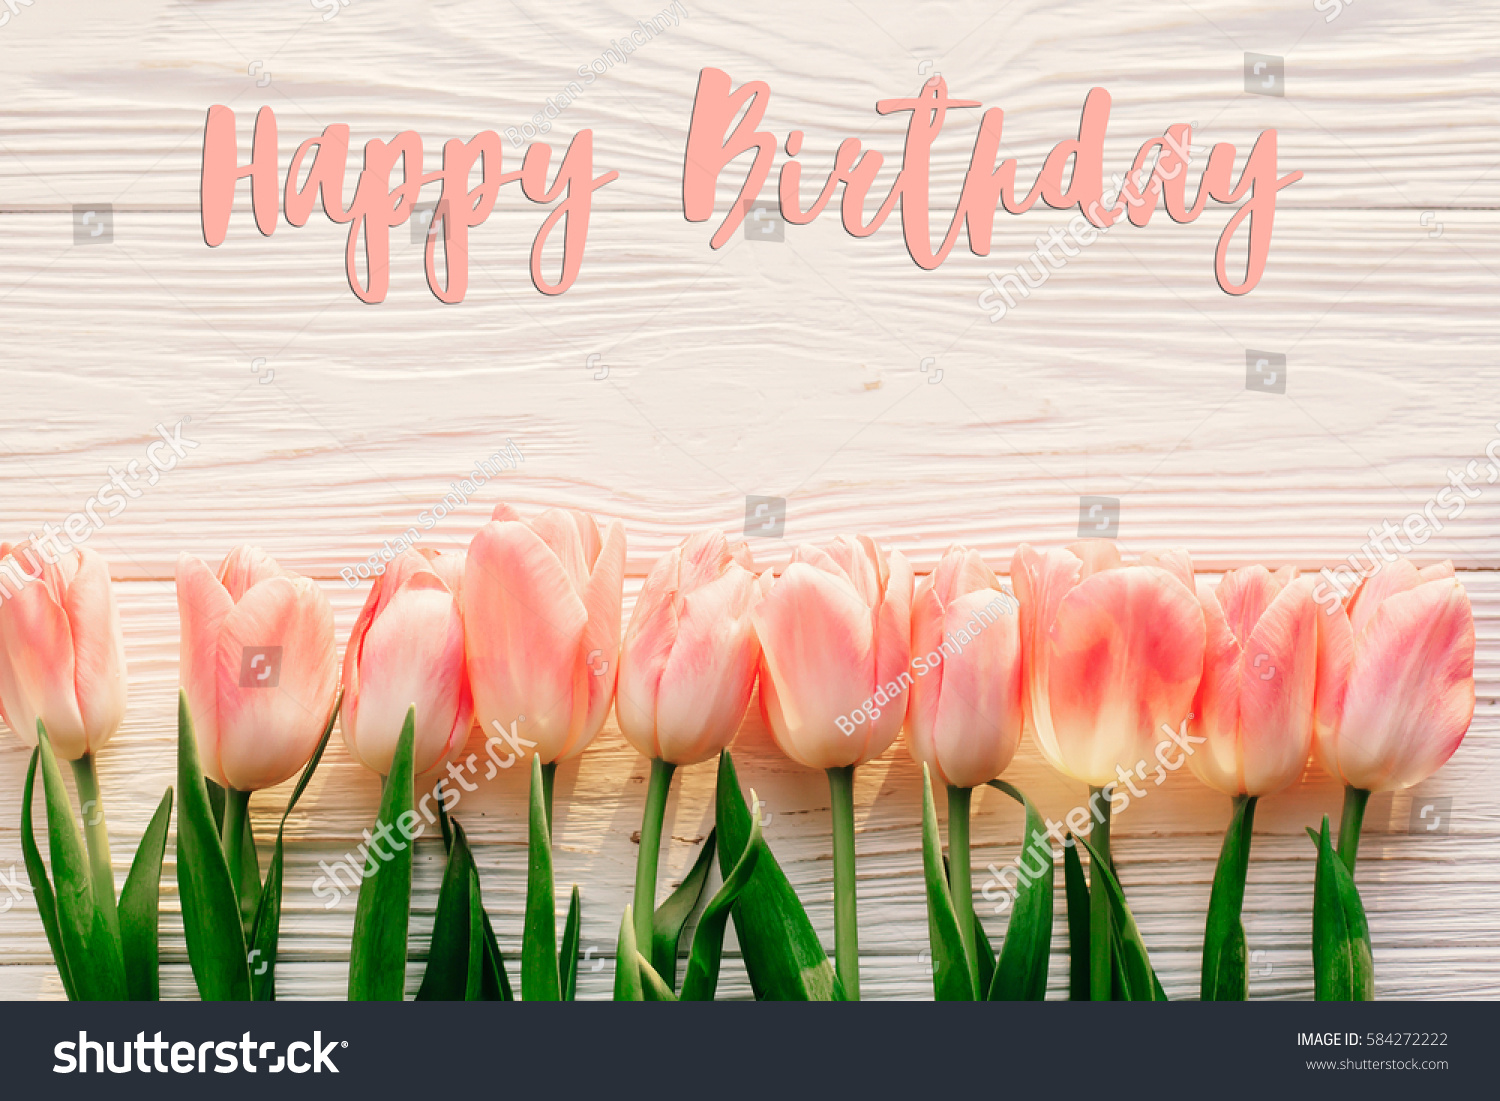 Happy birthday text sign on pink stock photo royalty free happy birthday text sign on pink tulips on white rustic wooden background flat lay spring izmirmasajfo Image collections